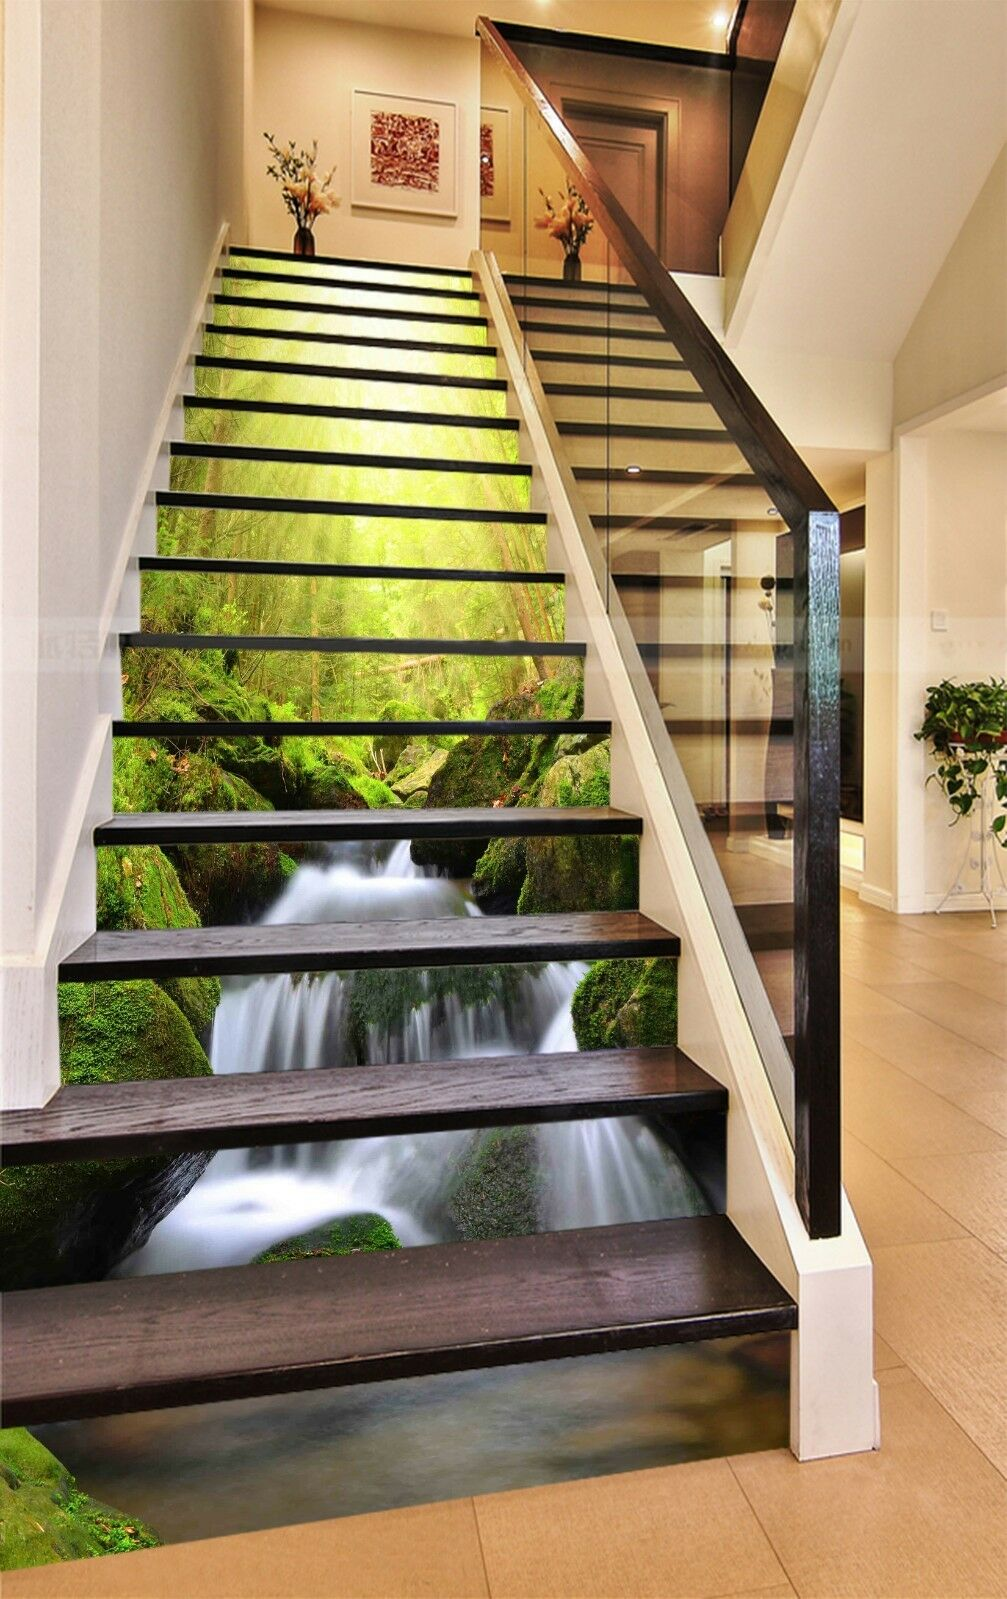 3D Forest stream 7 Stair Risers Decoration Photo Mural Vinyl Decal Wallpaper UK